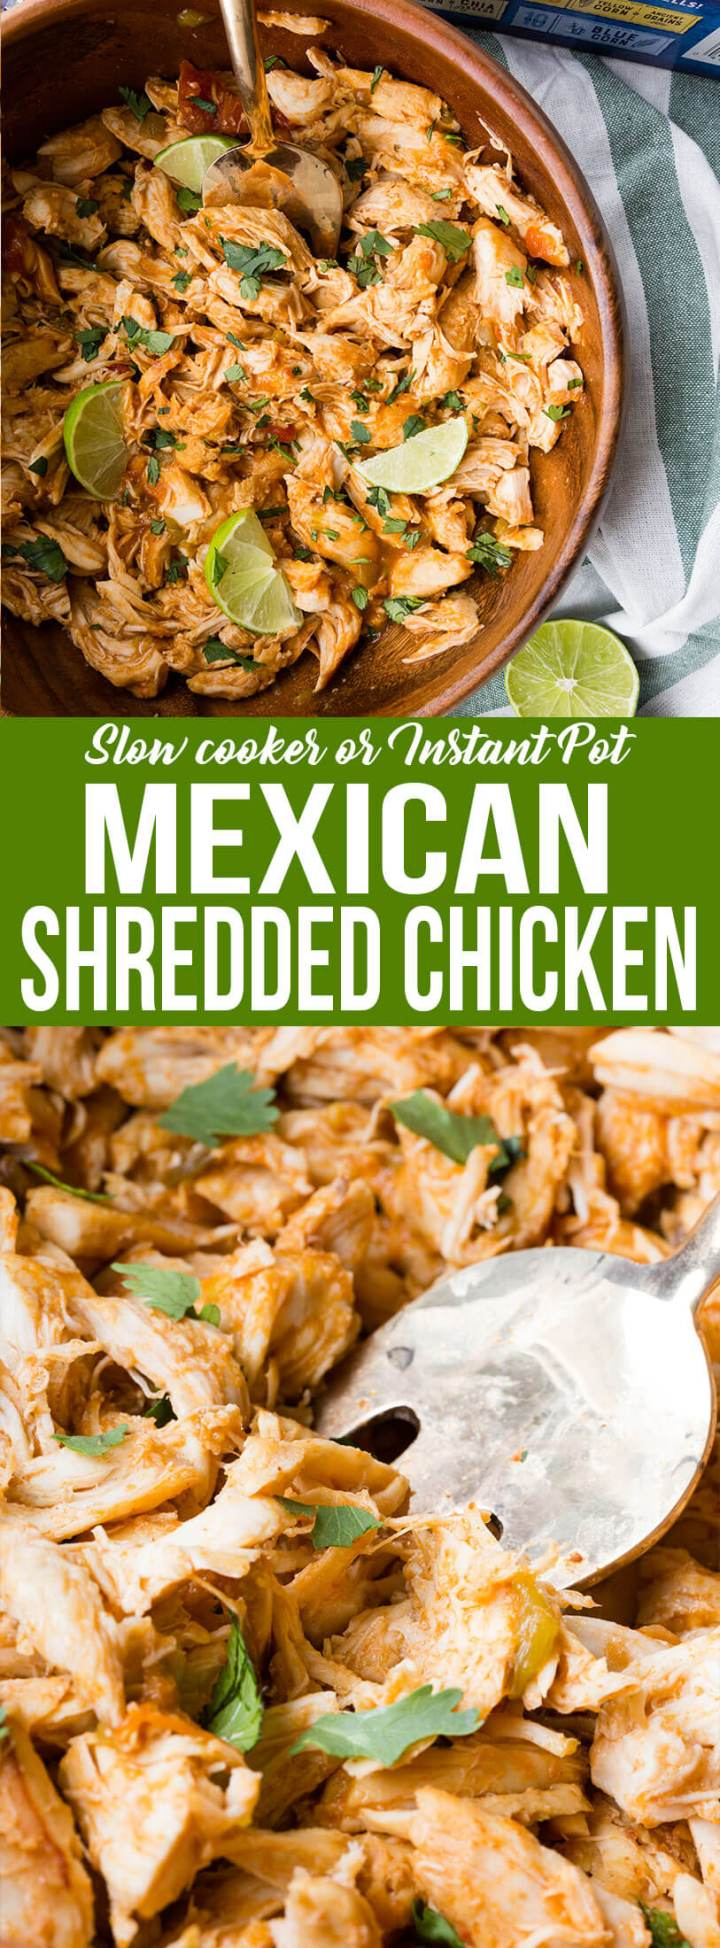 Easy Mexican shredded chicken with instructions for cooking in the slow cooker or the Pressure cooker, this is a versatile and delicious chicken great for game day.